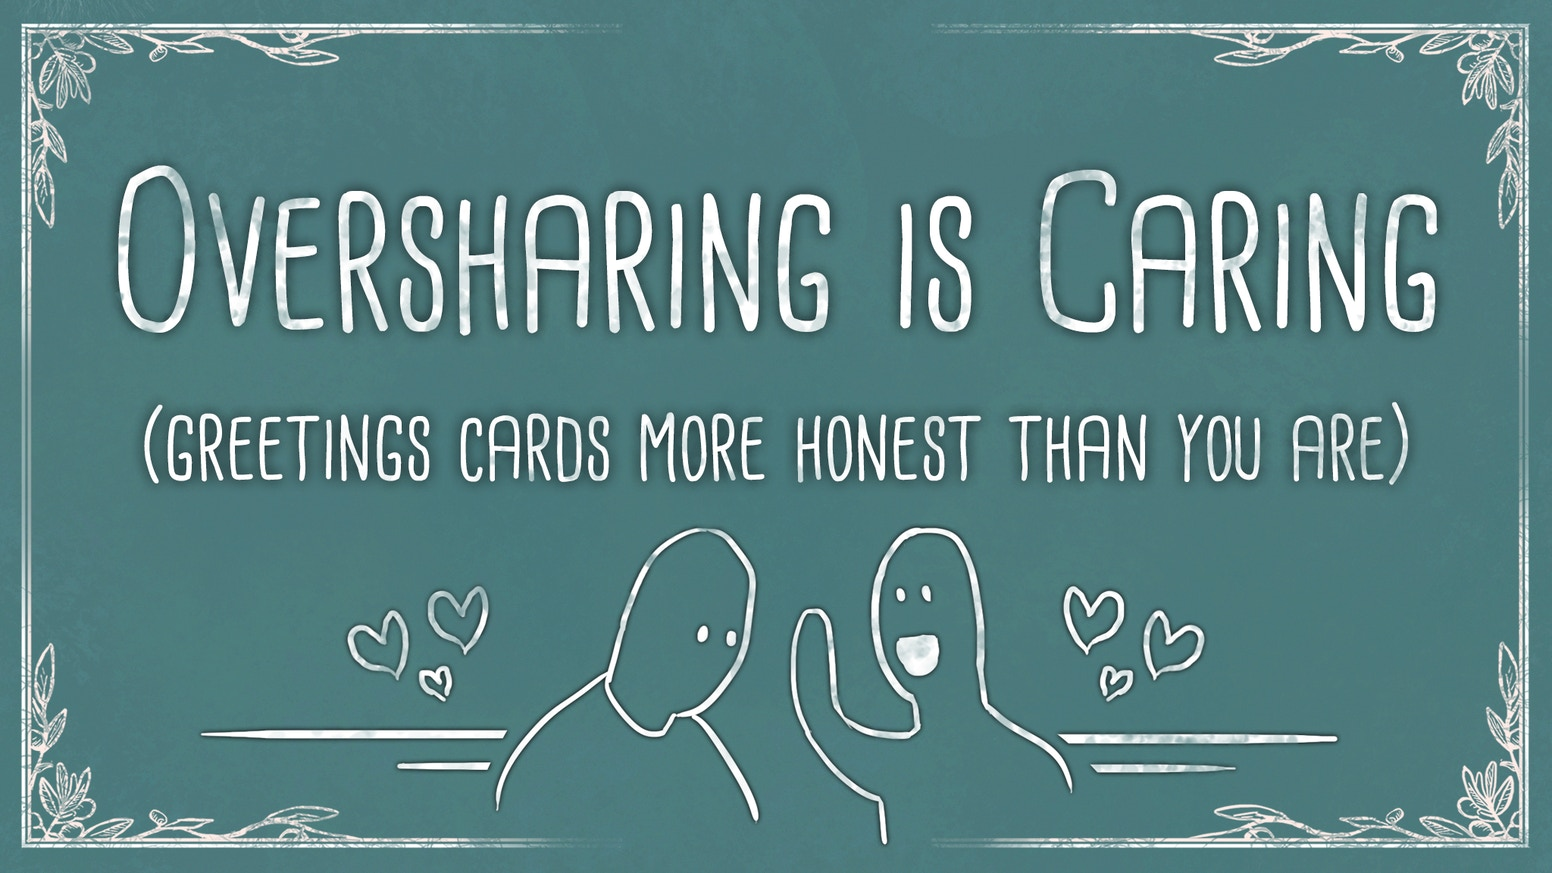 Oversharing Is Caring Greetings Cards More Honest Than You By